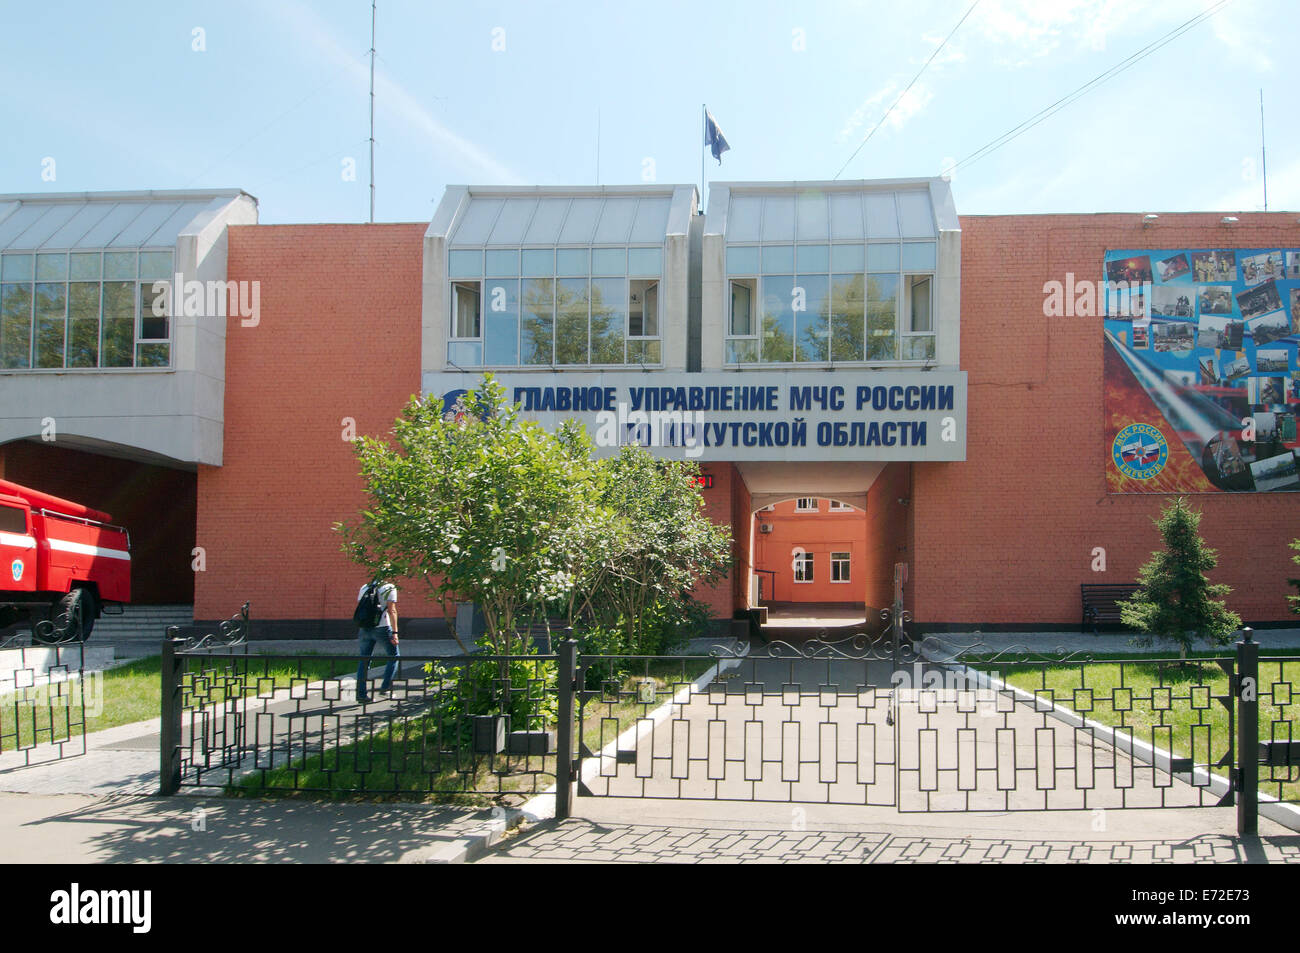 The building of the Russian Emergencies Ministry. Irkutsk, Siberia, Russian Federation - Stock Image